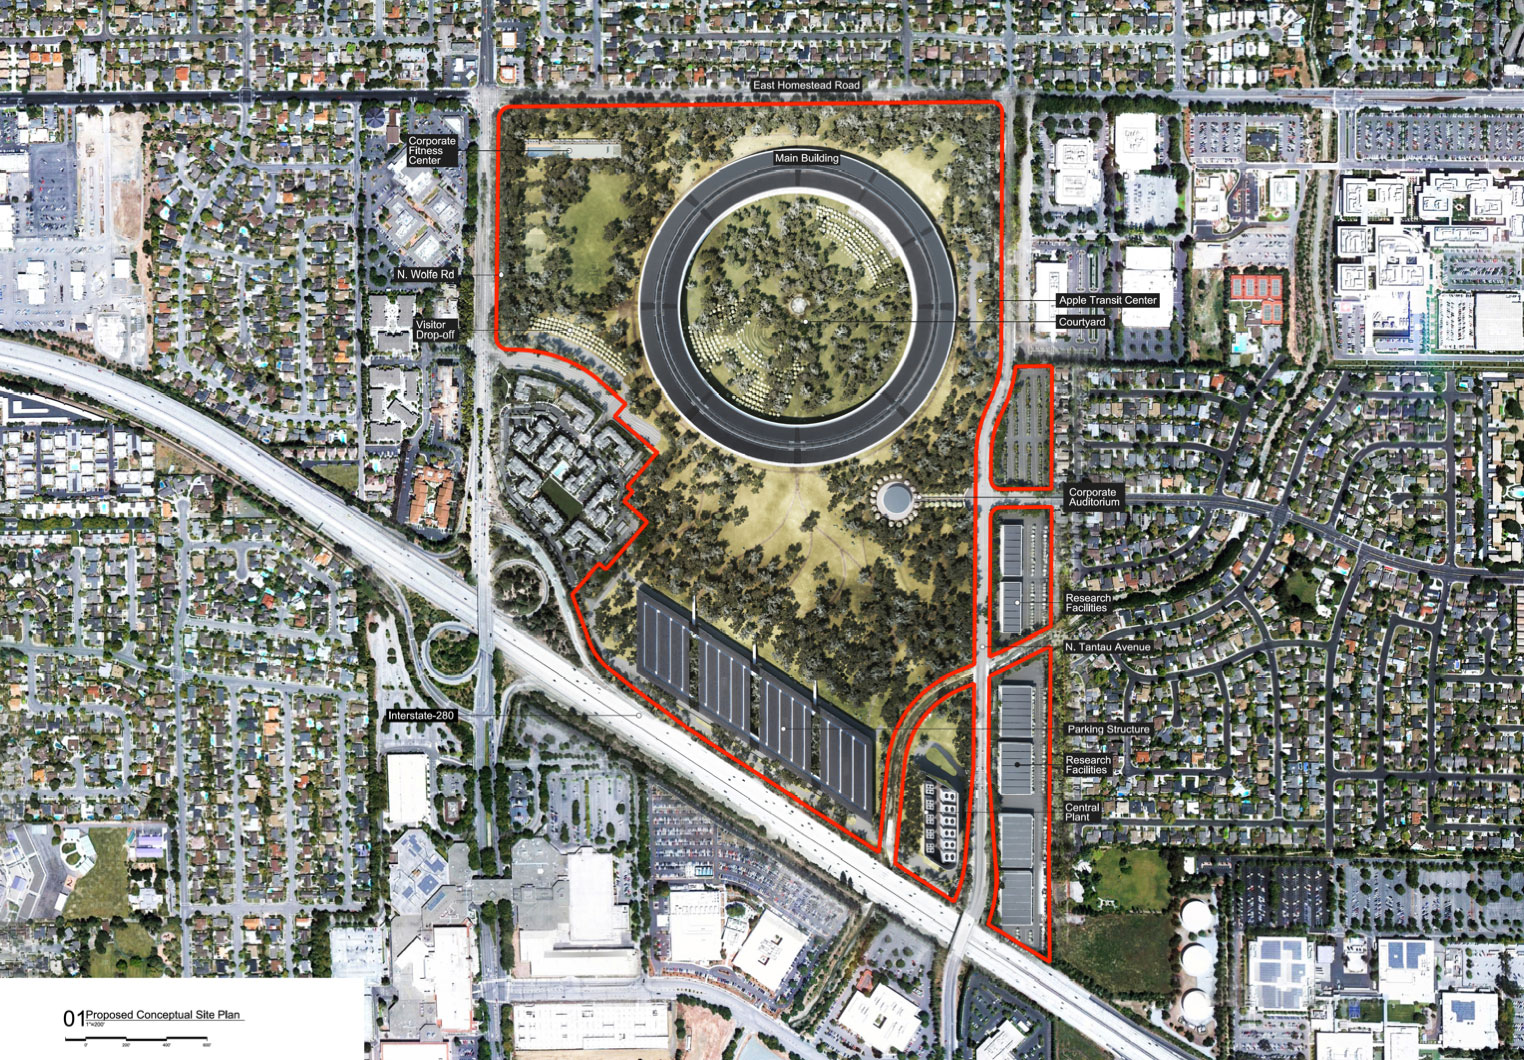 apple campus 2 by foster partners plan 1 ideasgn. Black Bedroom Furniture Sets. Home Design Ideas